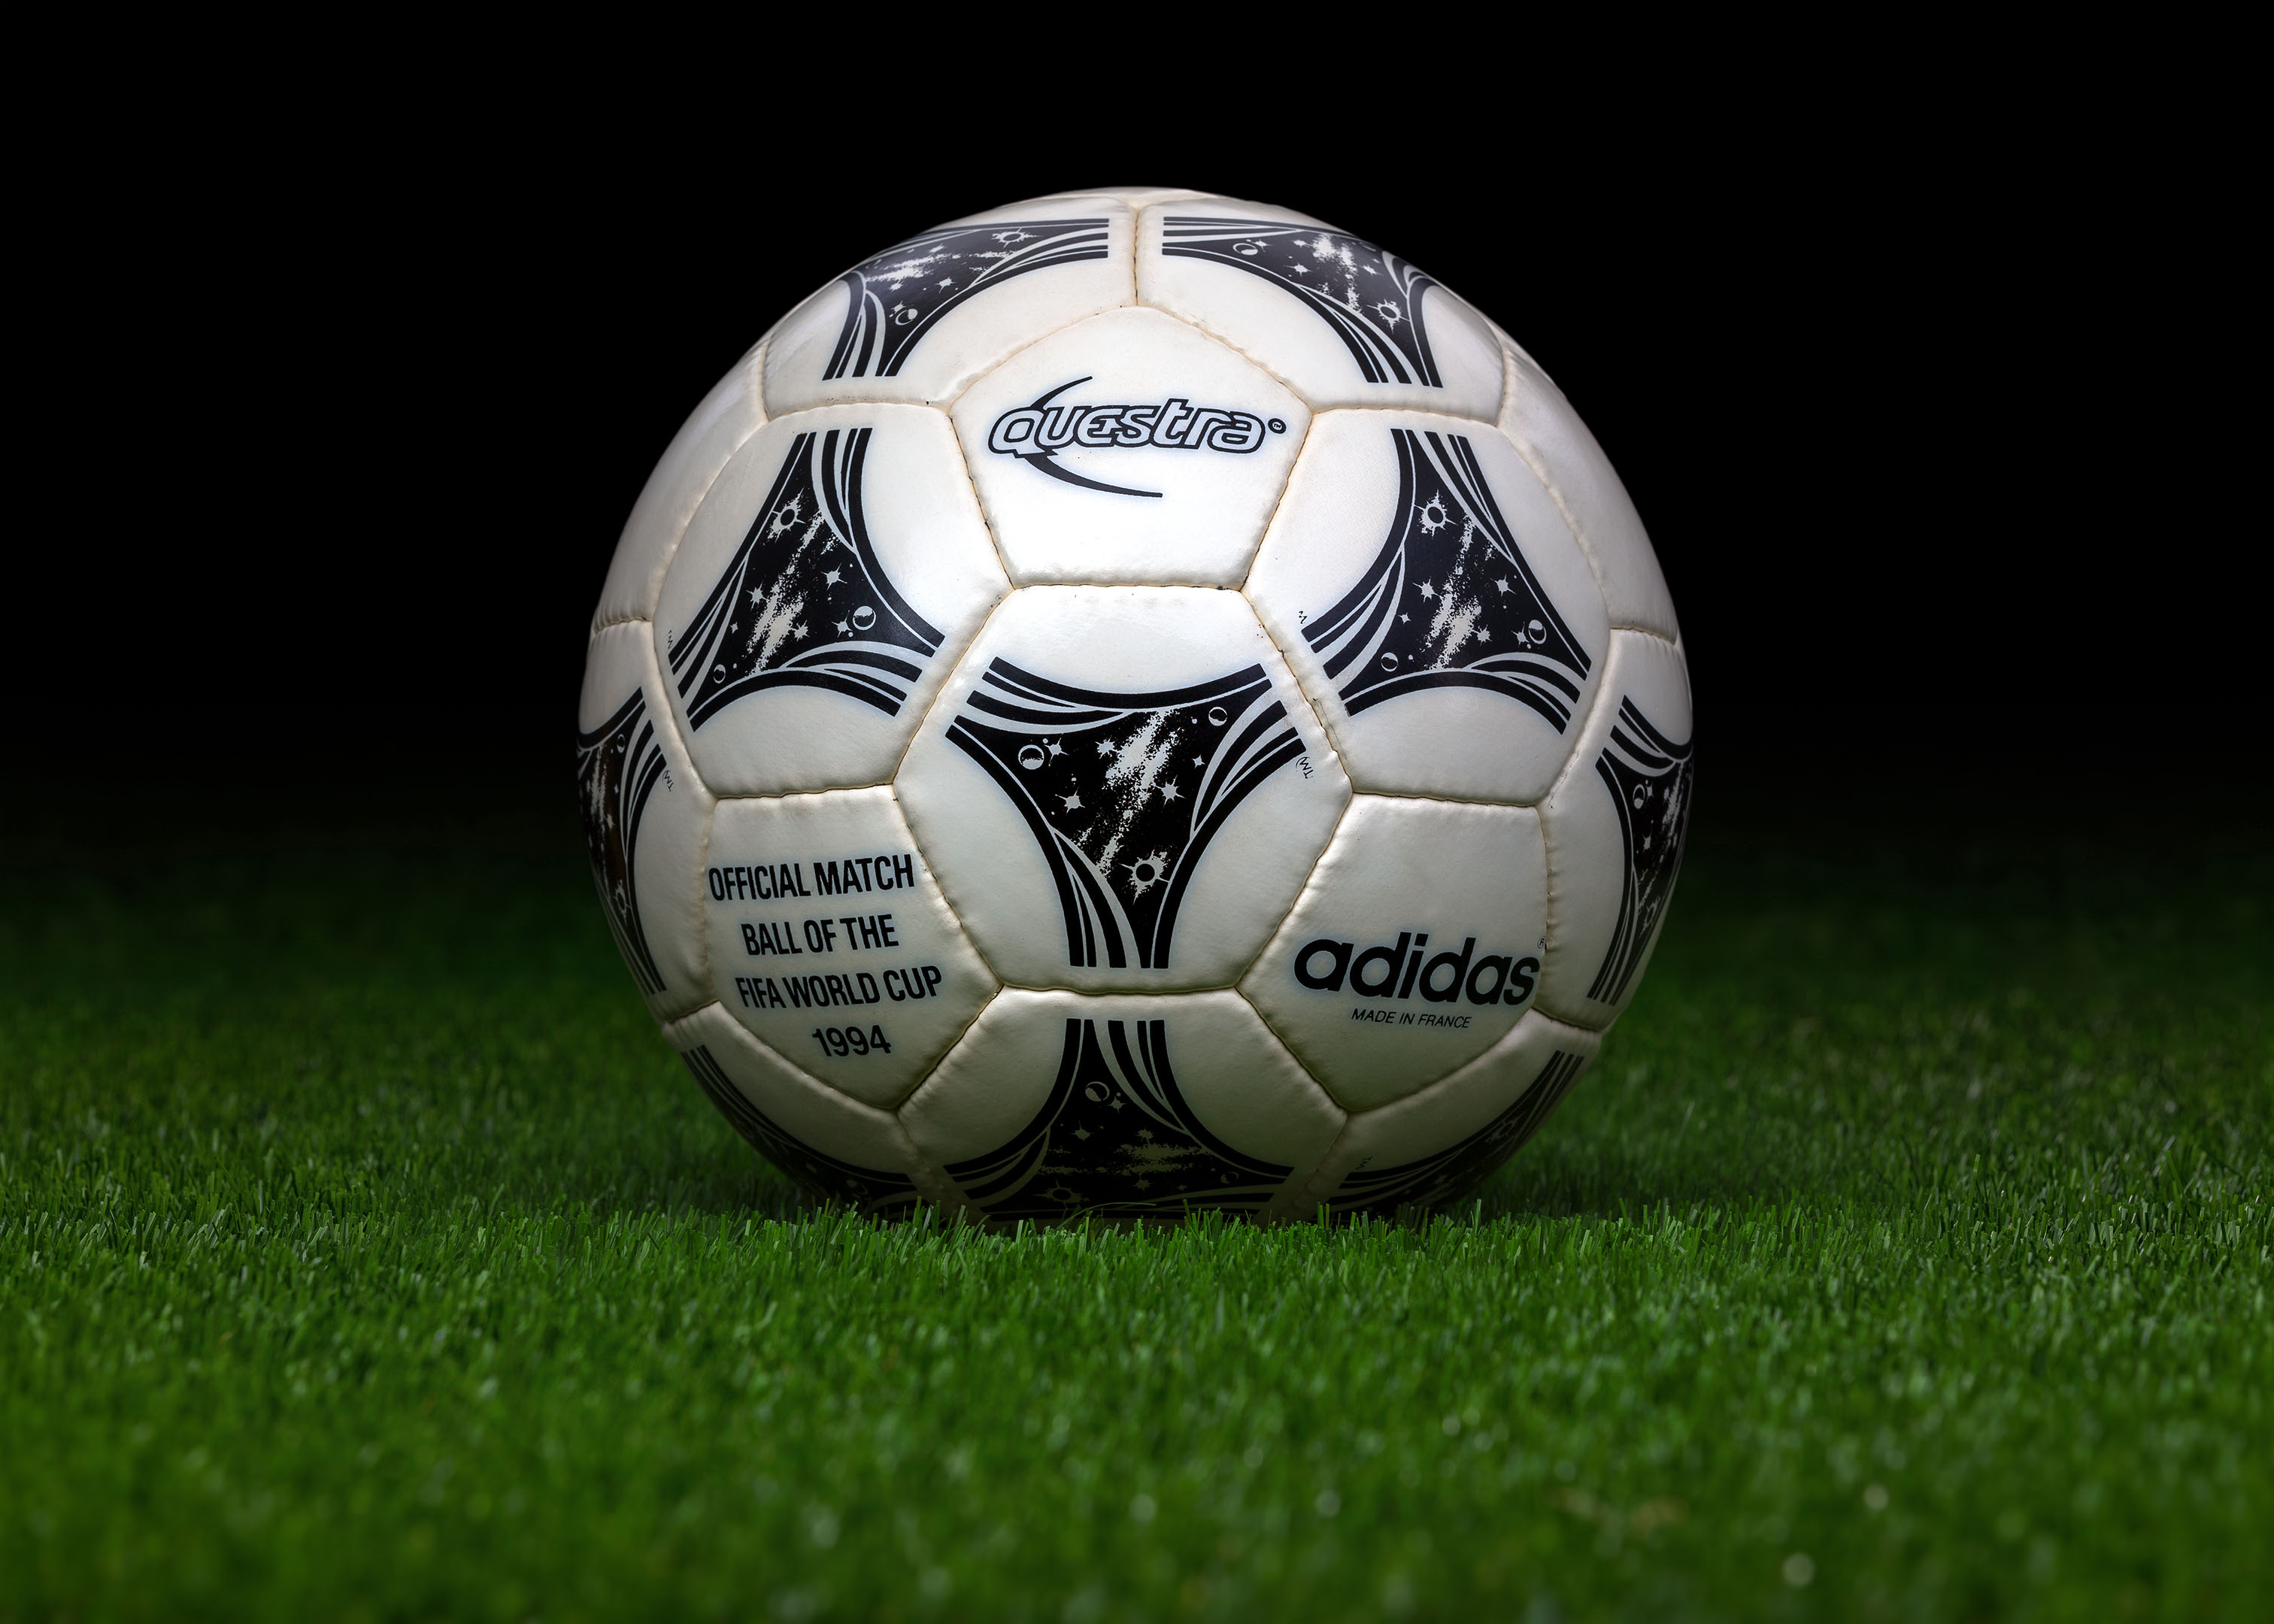 base importante Molesto  Made in France match ball FIFA World Cup 1994 USA Adidas Questra -  worldcupballs.info